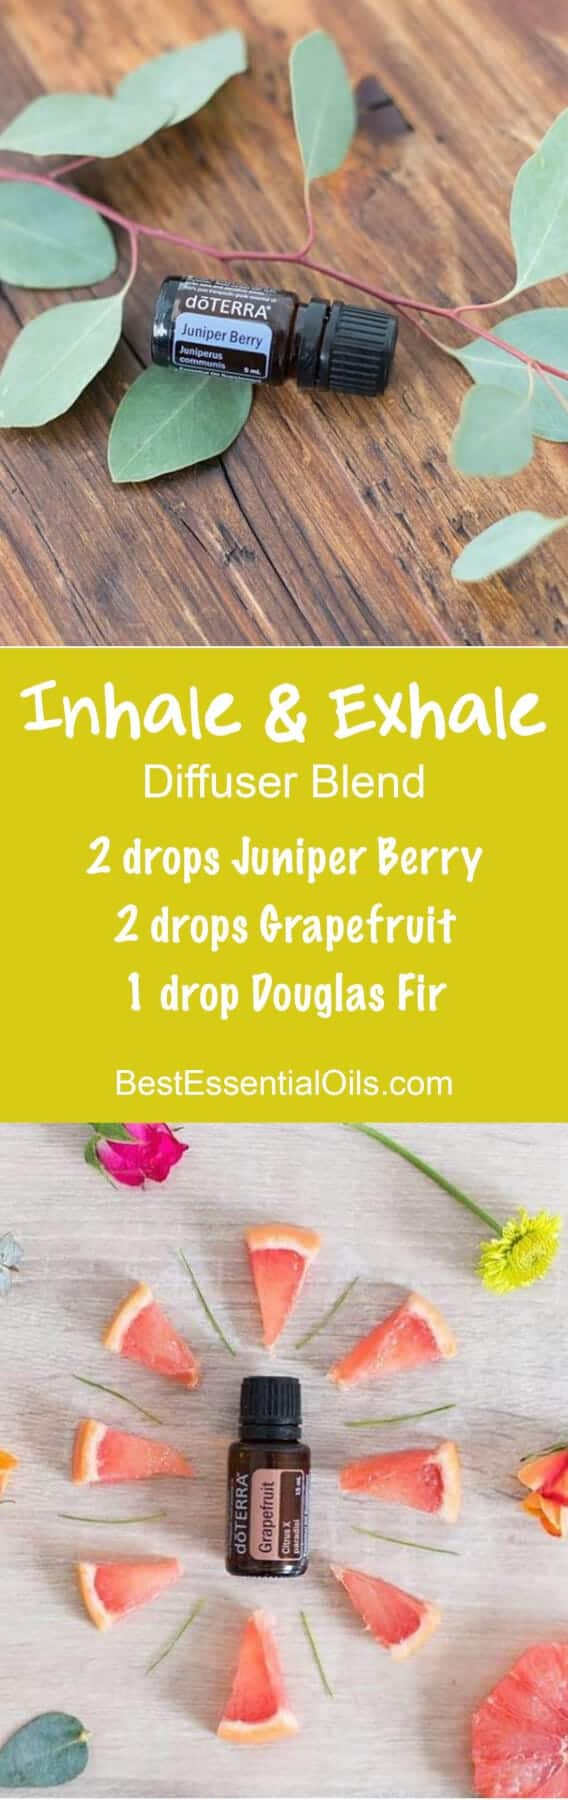 Inhale and Exhale doTERRA Diffuser Blend